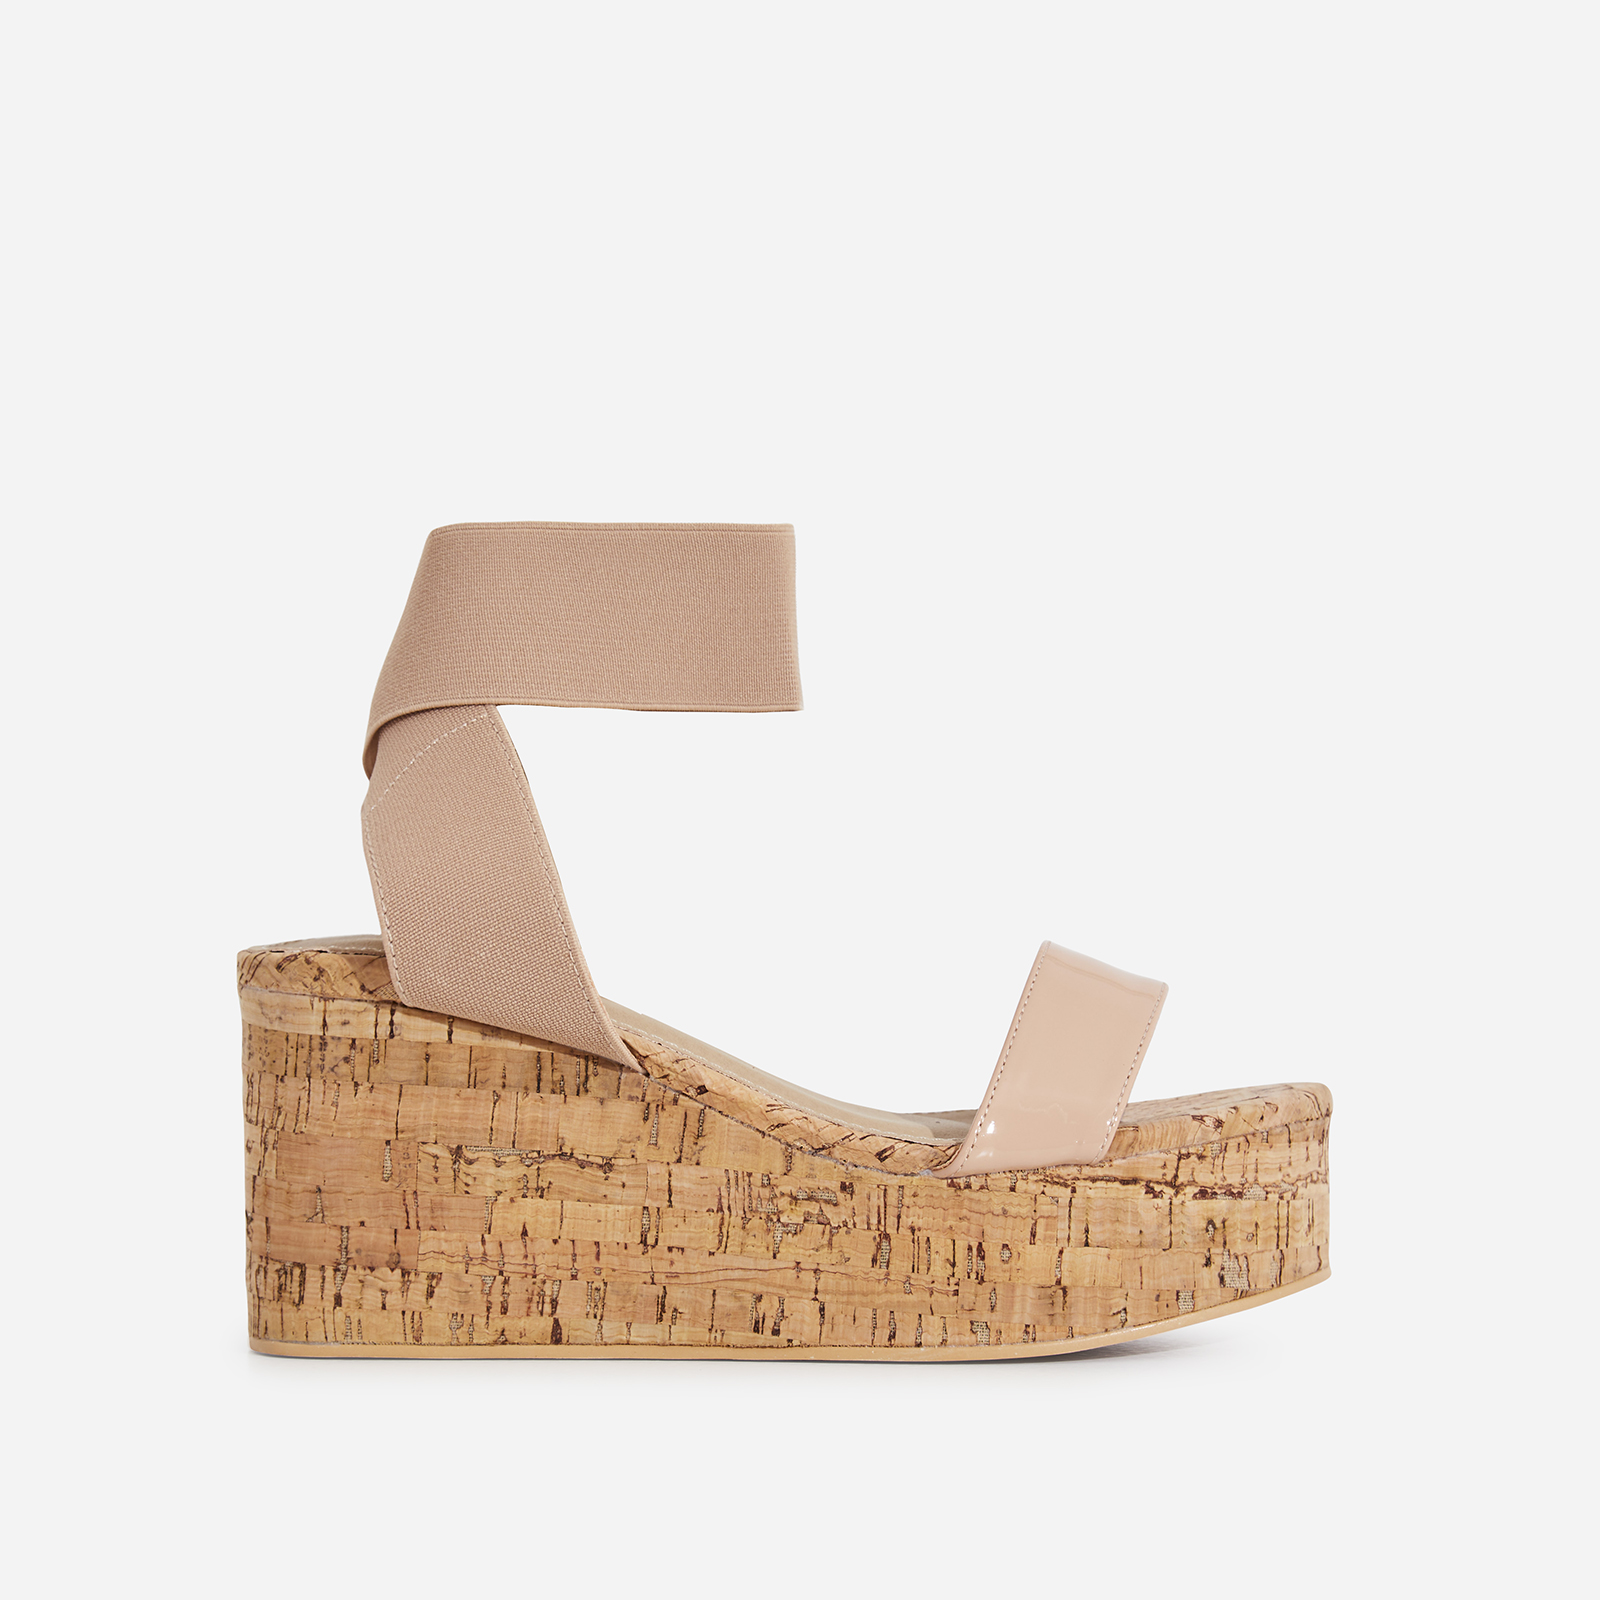 Andie Elasticated Wedge Sandal In Blush Pink Patent